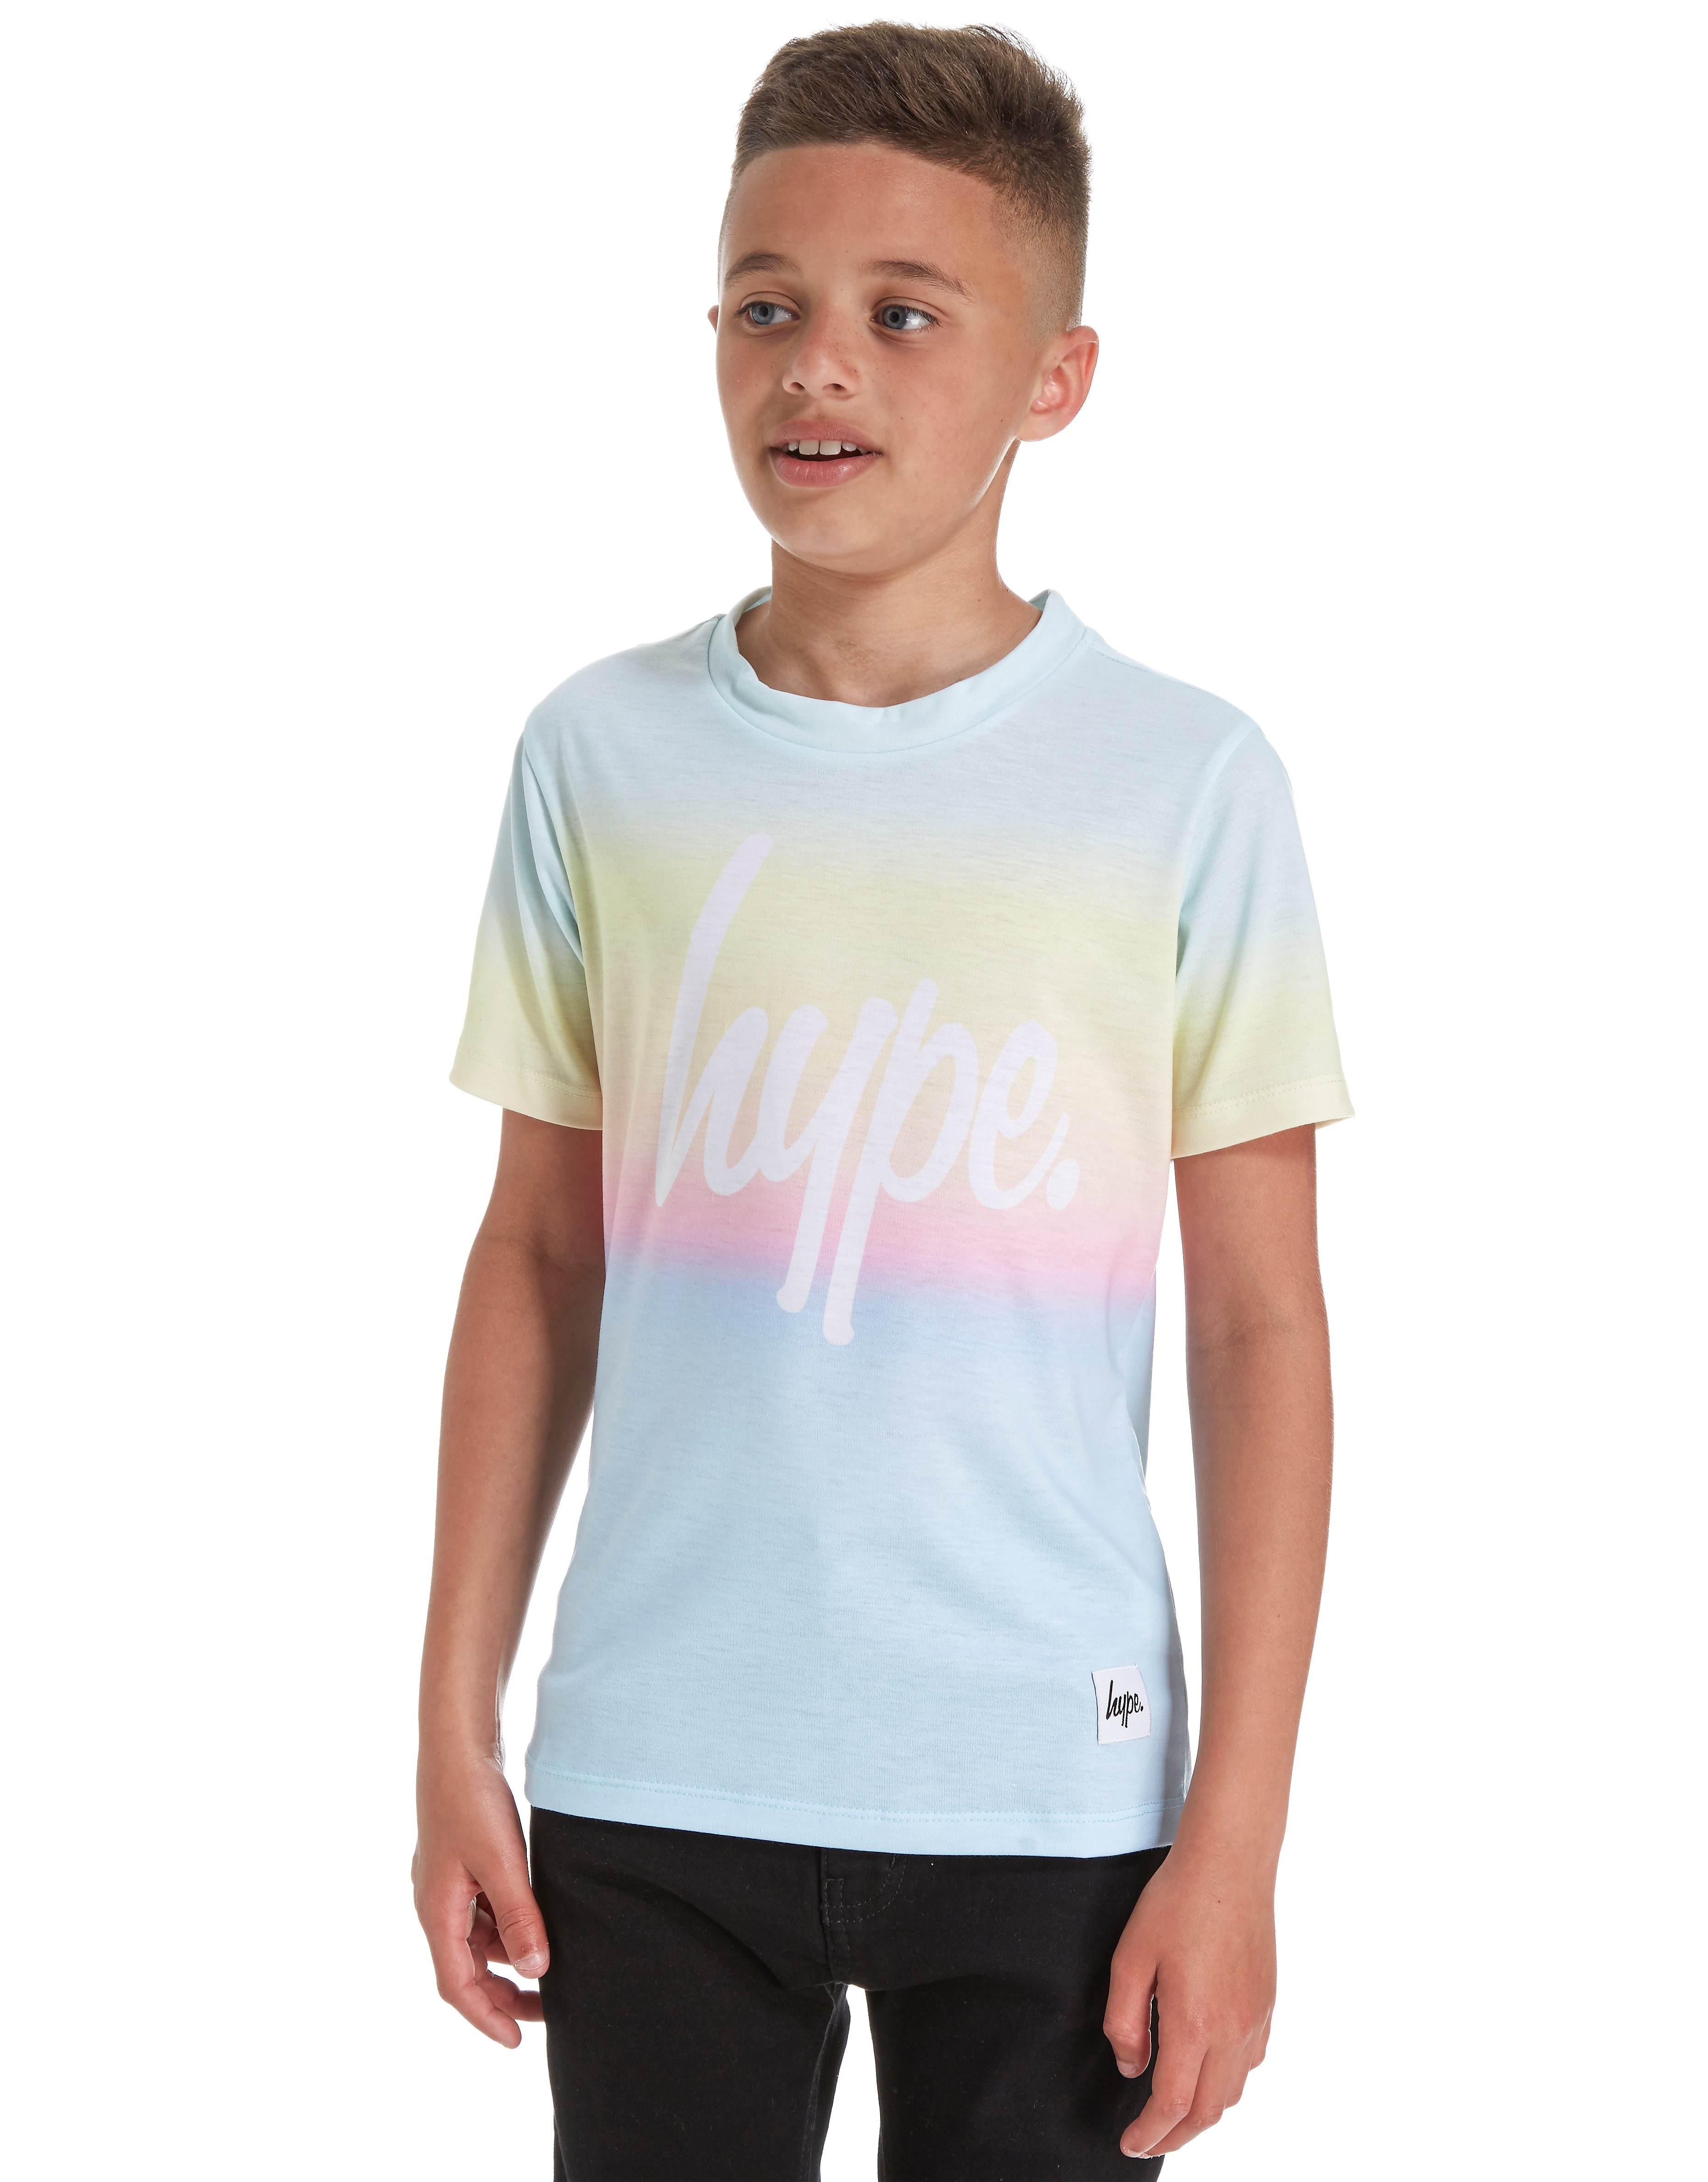 Hype T-shirt Pasted Fade Junior